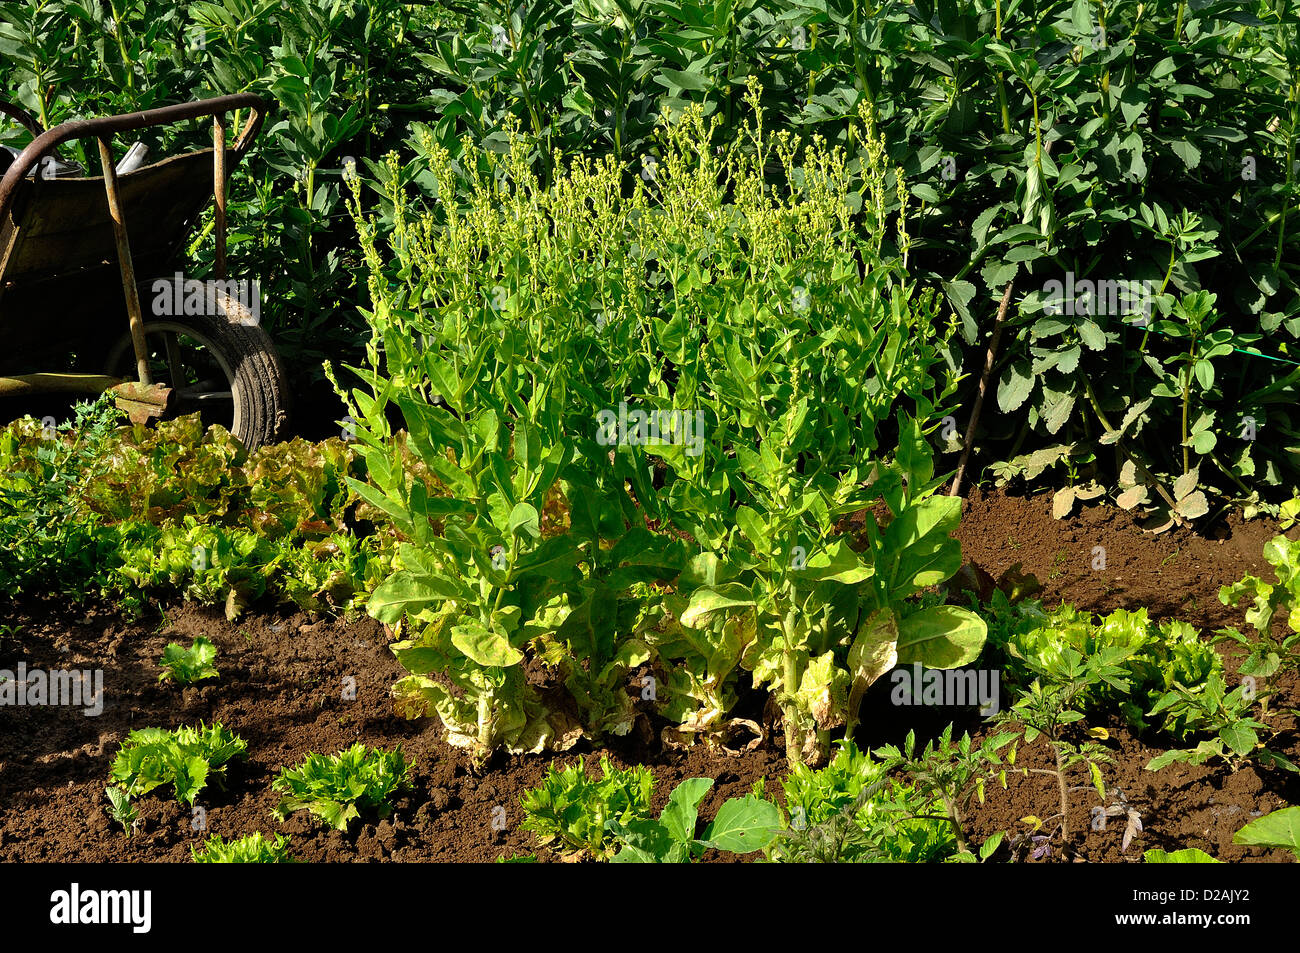 Lettuce at the end of maturity (variety : 'Val d'Orge'), broad beans in the background. - Stock Image